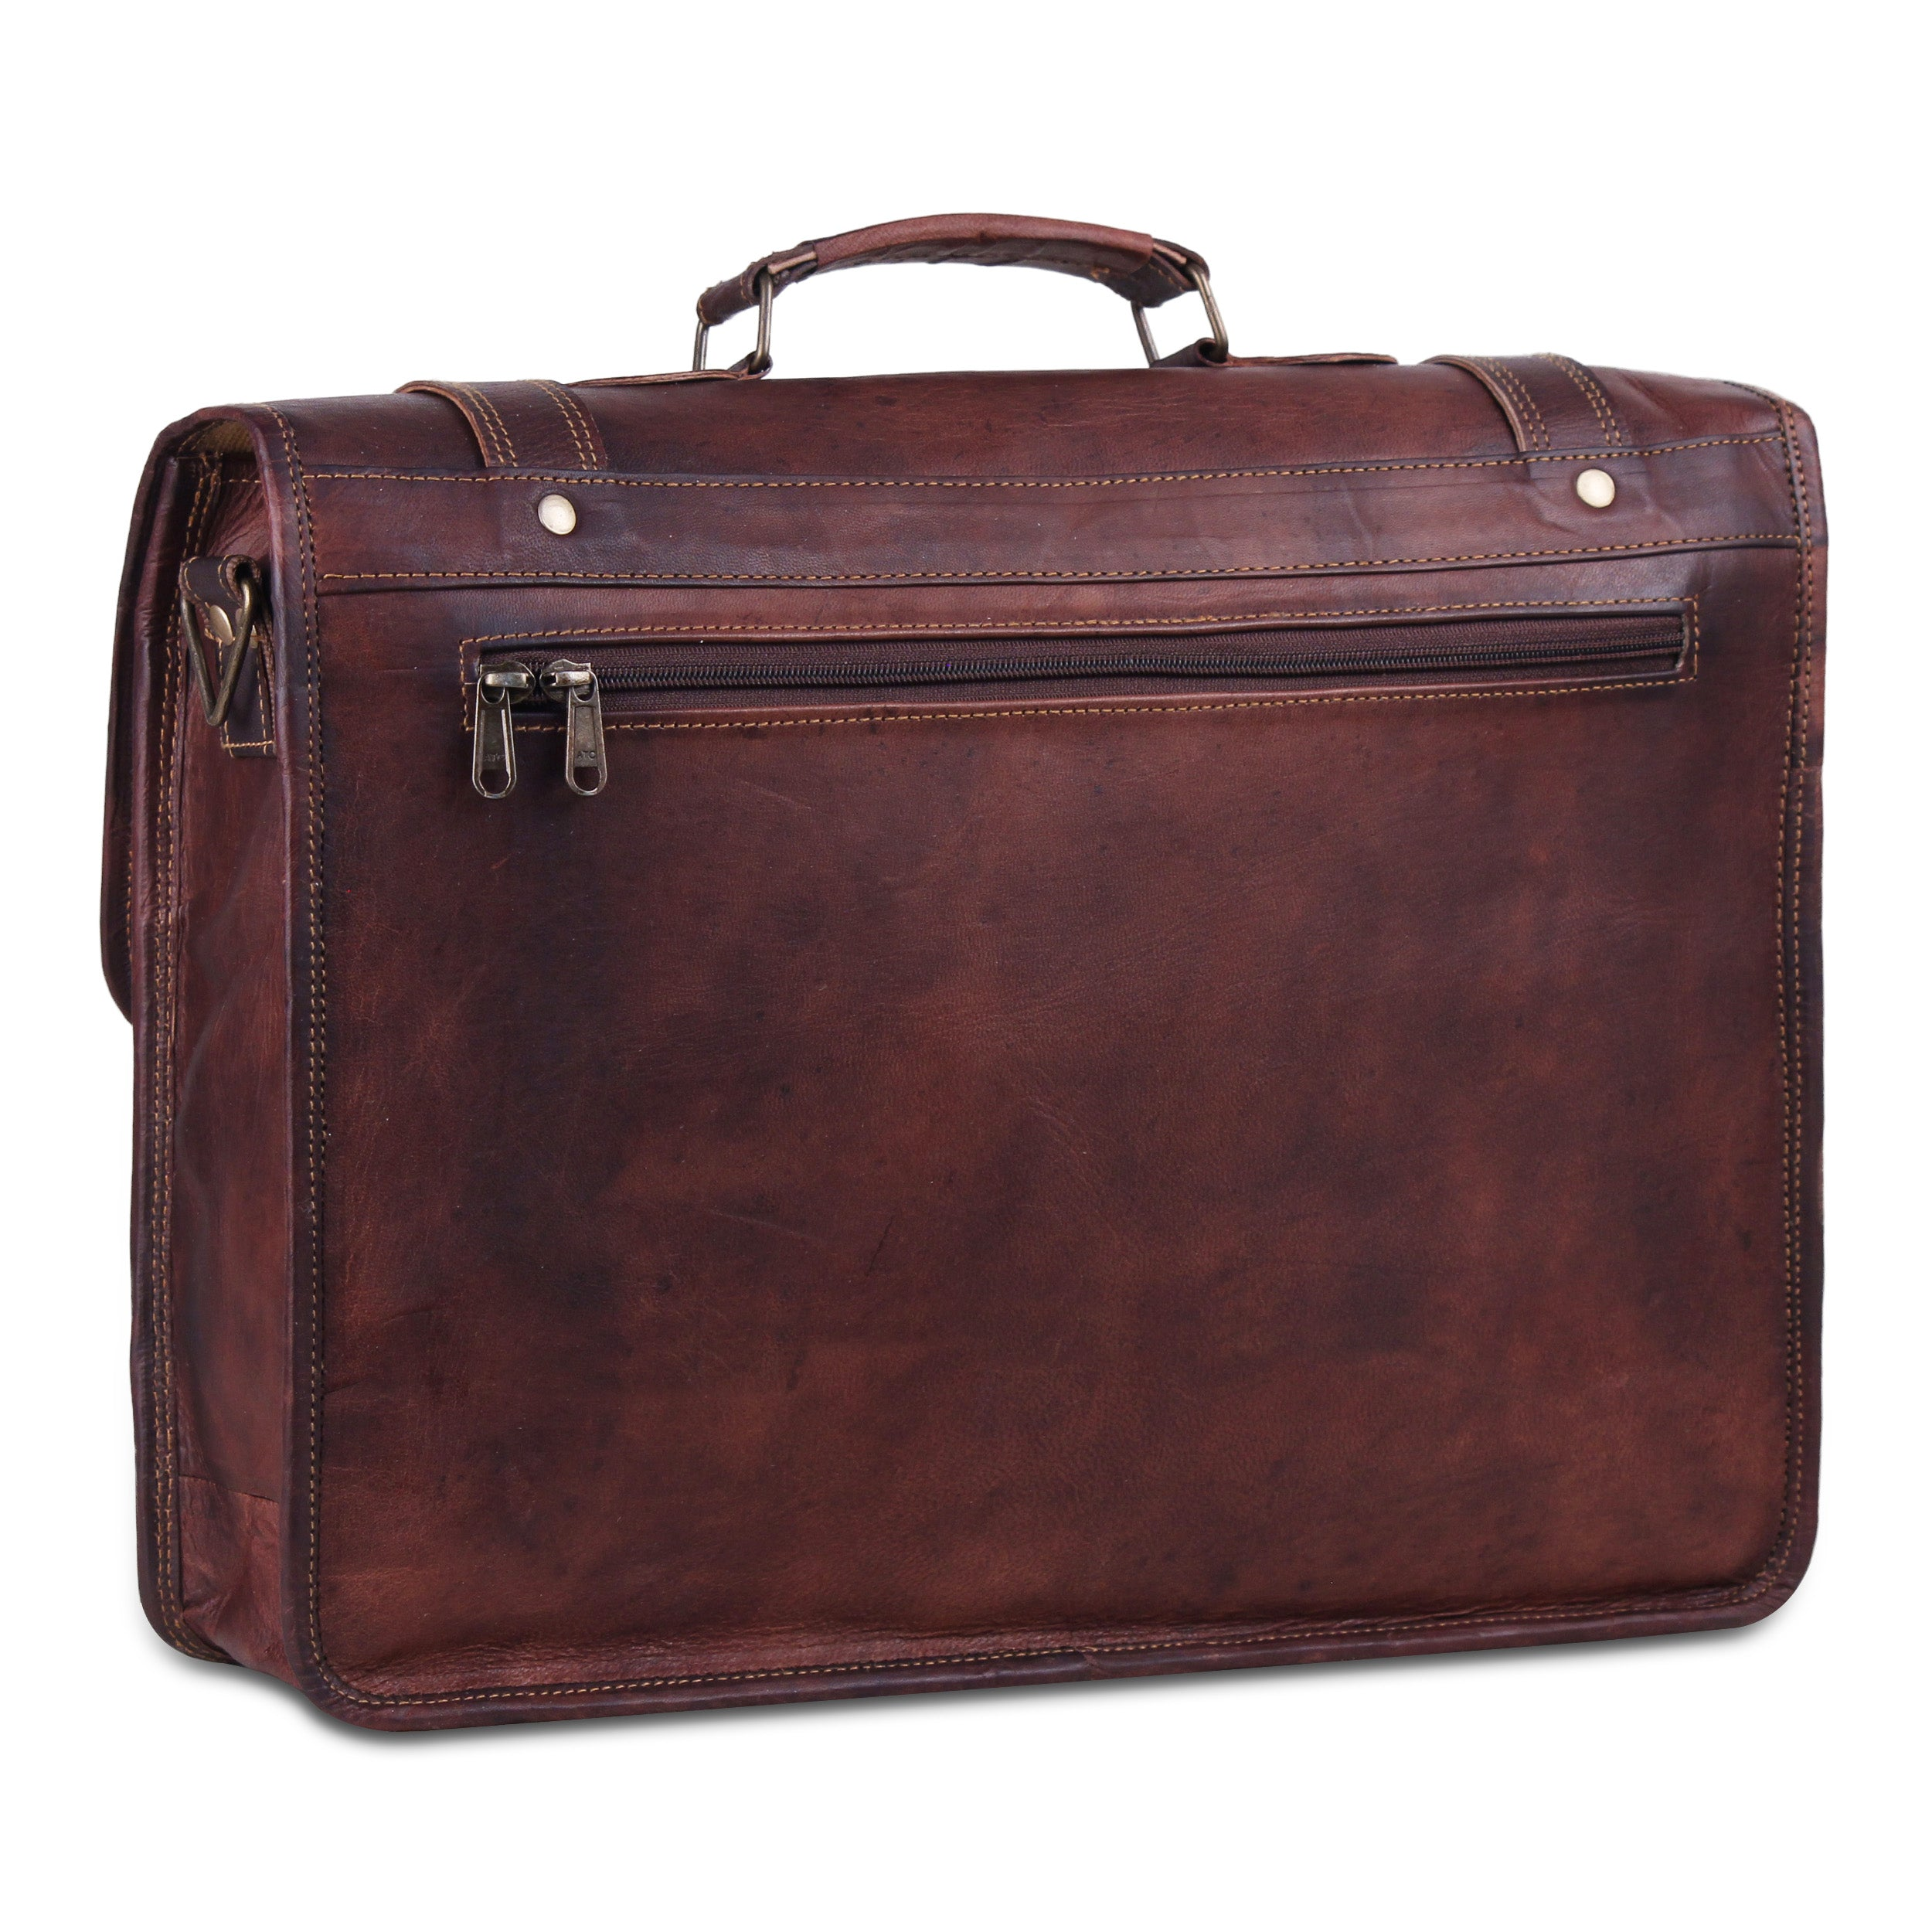 Large Rustic Brown Leather Messenger Briefcase Bag with Top Handle